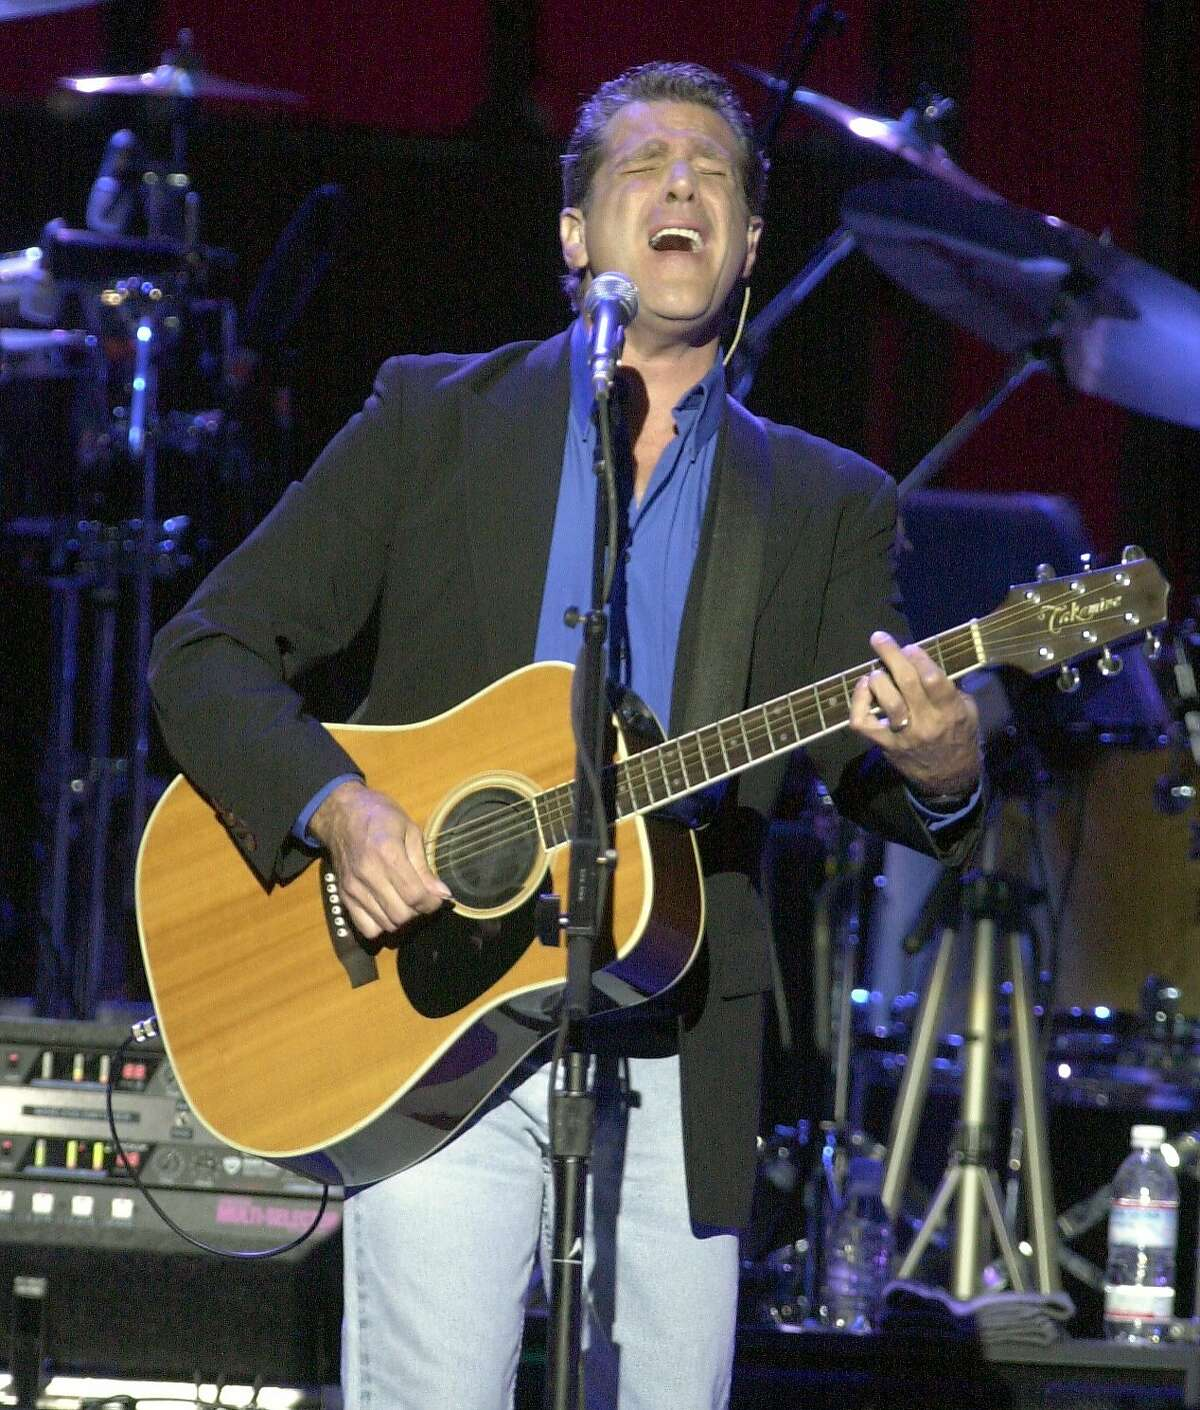 eagles093_jrs.jpg The Eagles in concert at the Chronicle Pavillion. 8/20/03 in Concord. Glenn Frey plays the guitar. JOHN STOREY / The Chronicle